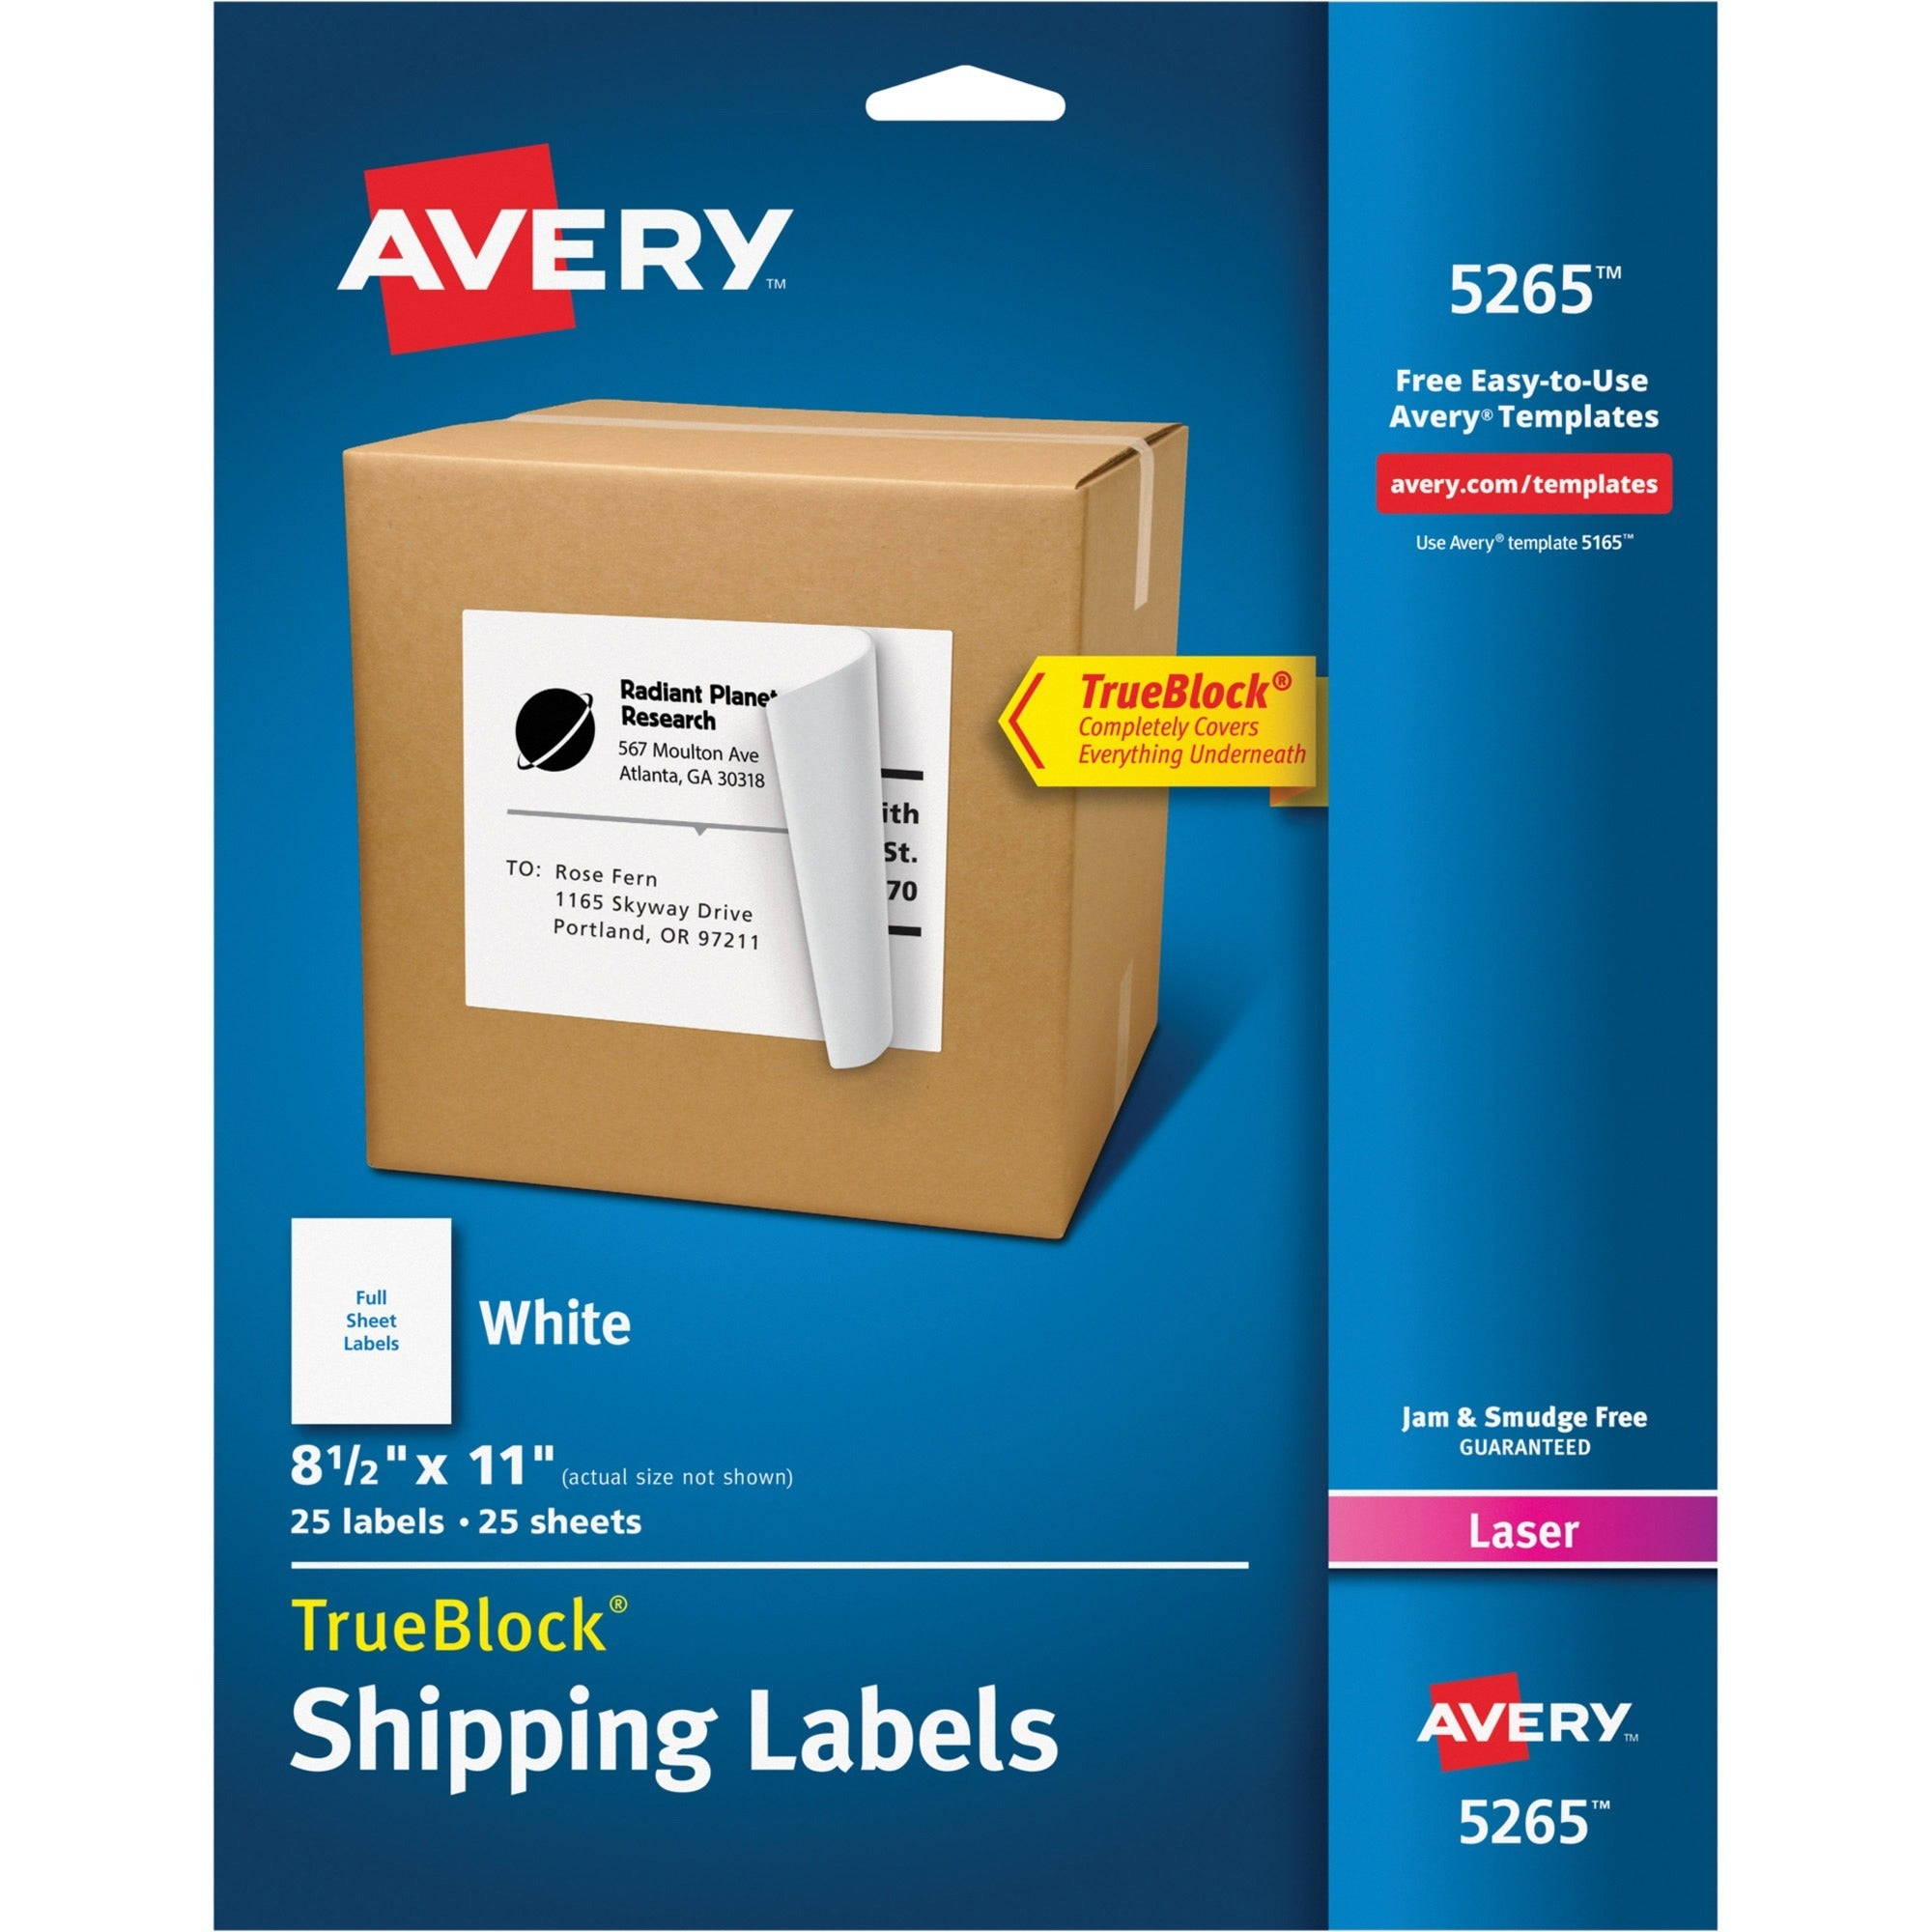 Avery® Shipping Labels - TrueBlock, SKU: AVE 5265